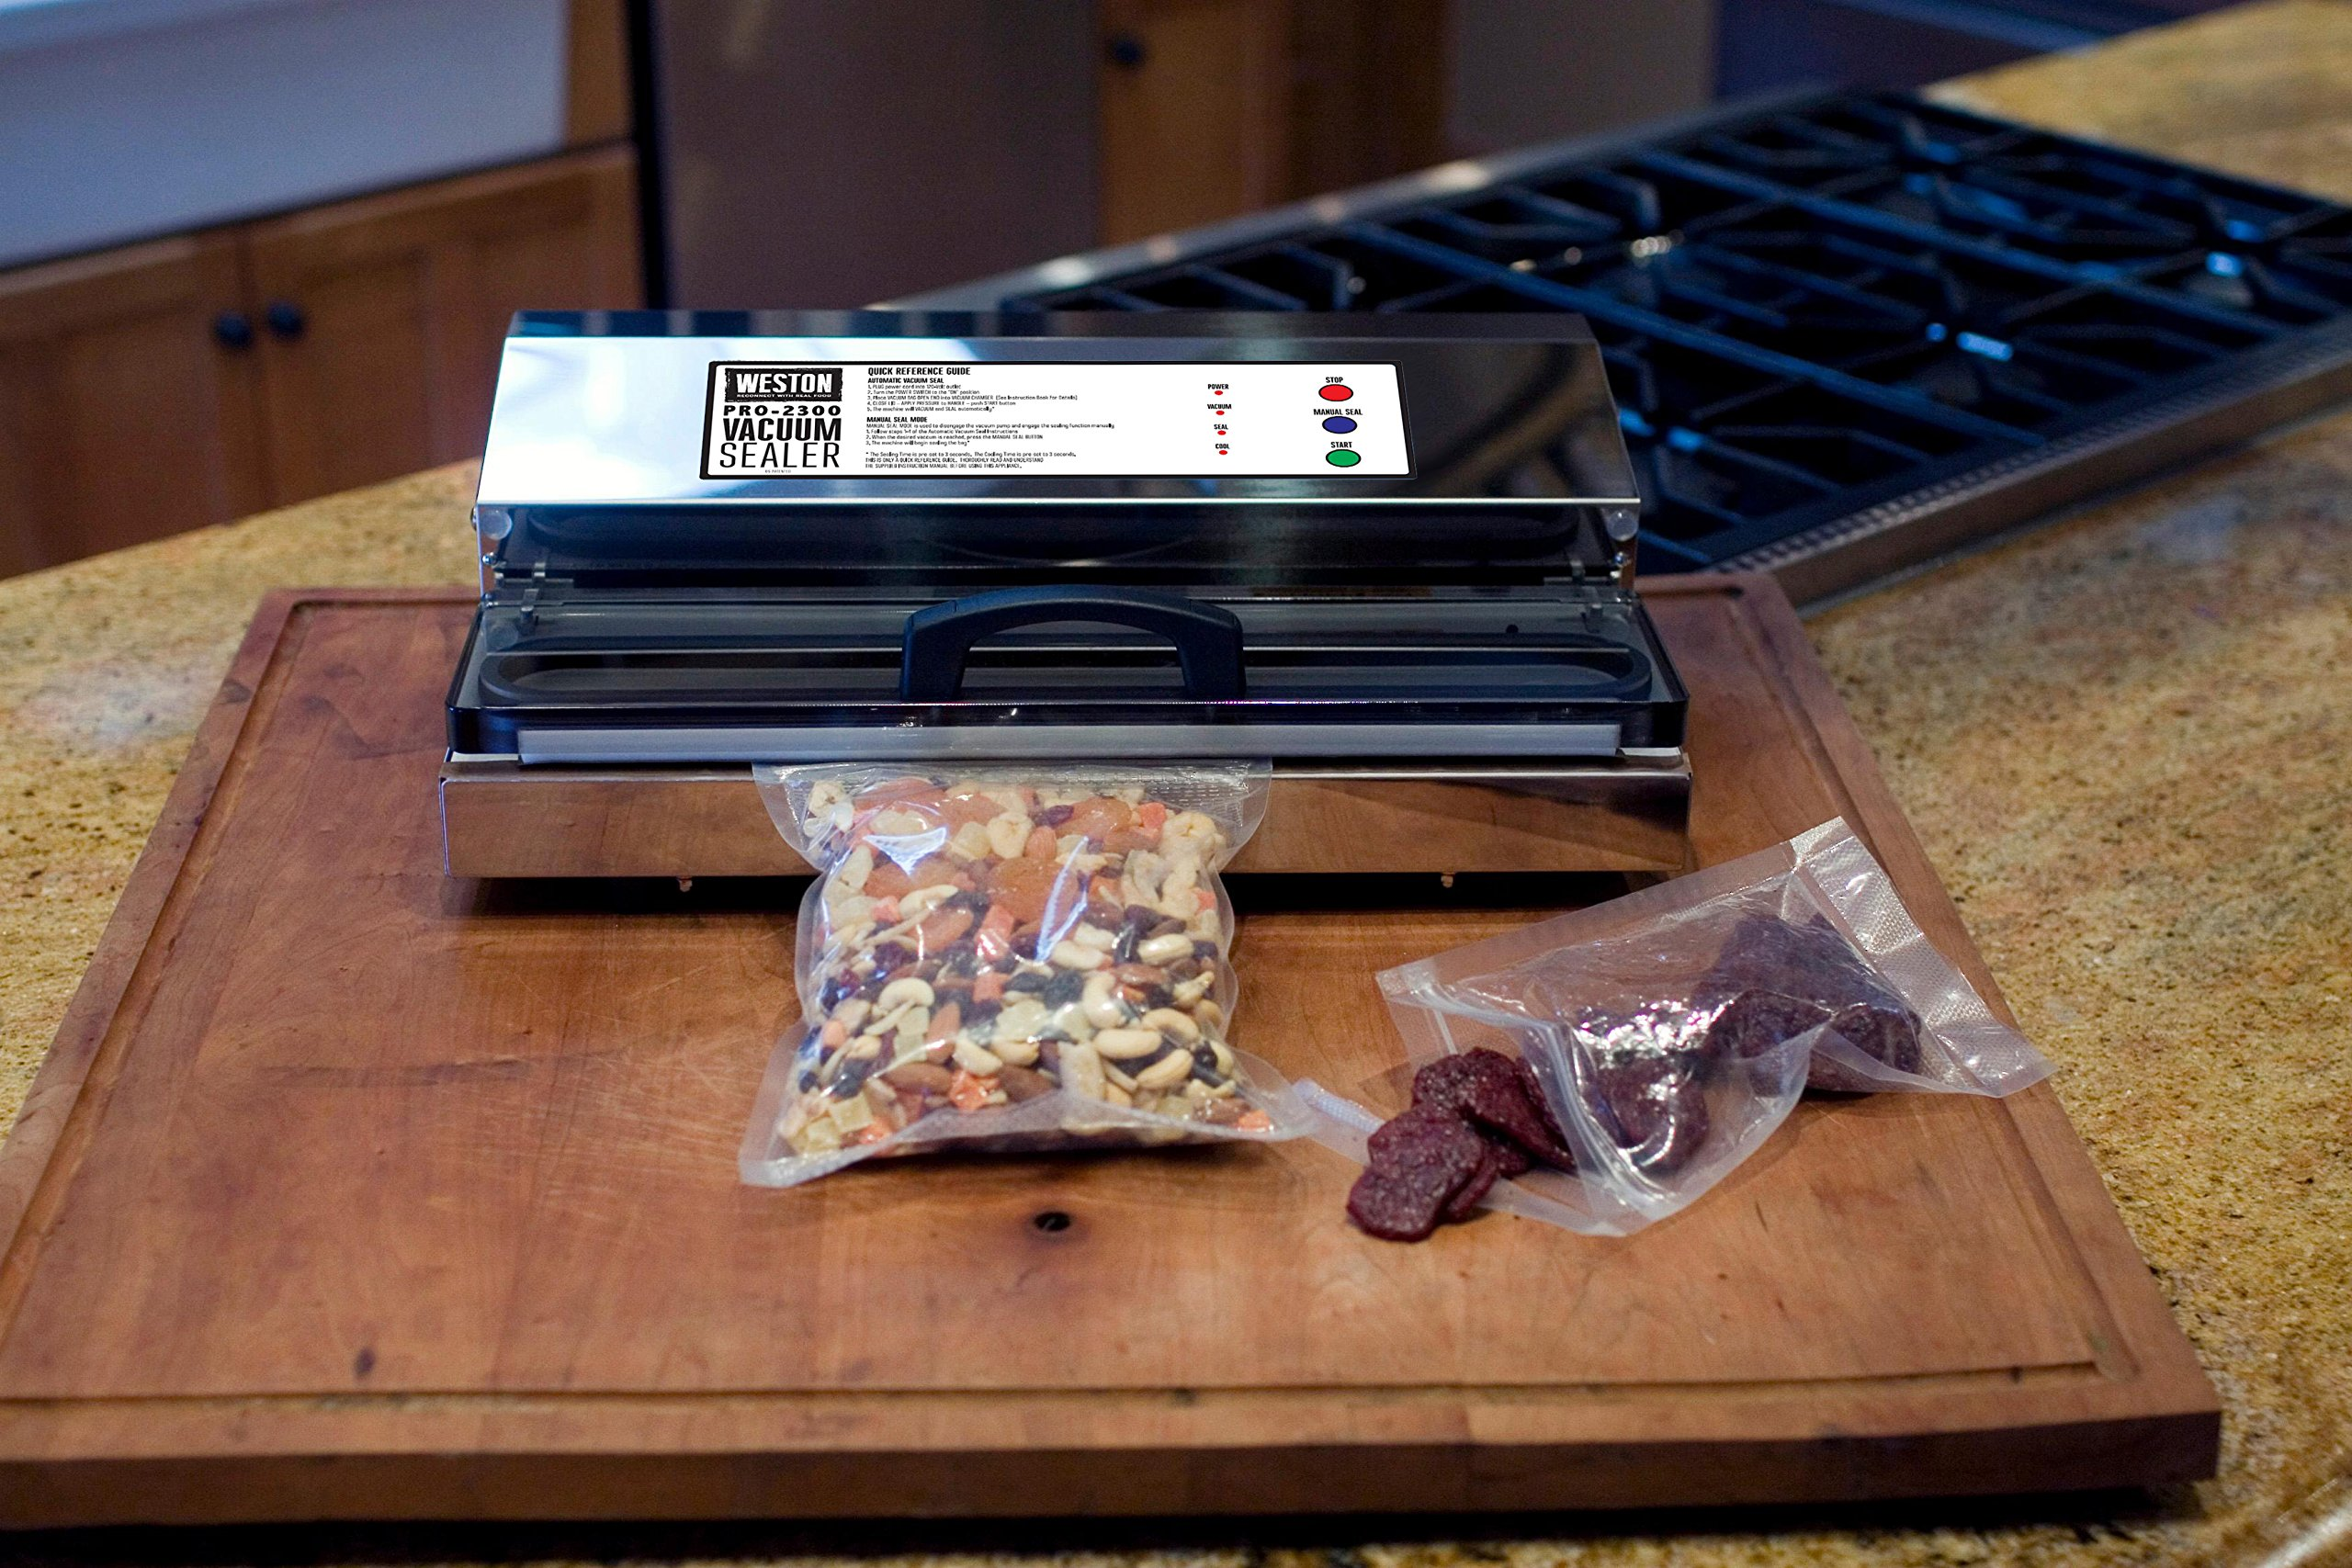 Weston Pro-2300 Commercial Grade Stainless Steel Vacuum Sealer (65-0201), Double Piston Pump by Weston (Image #5)